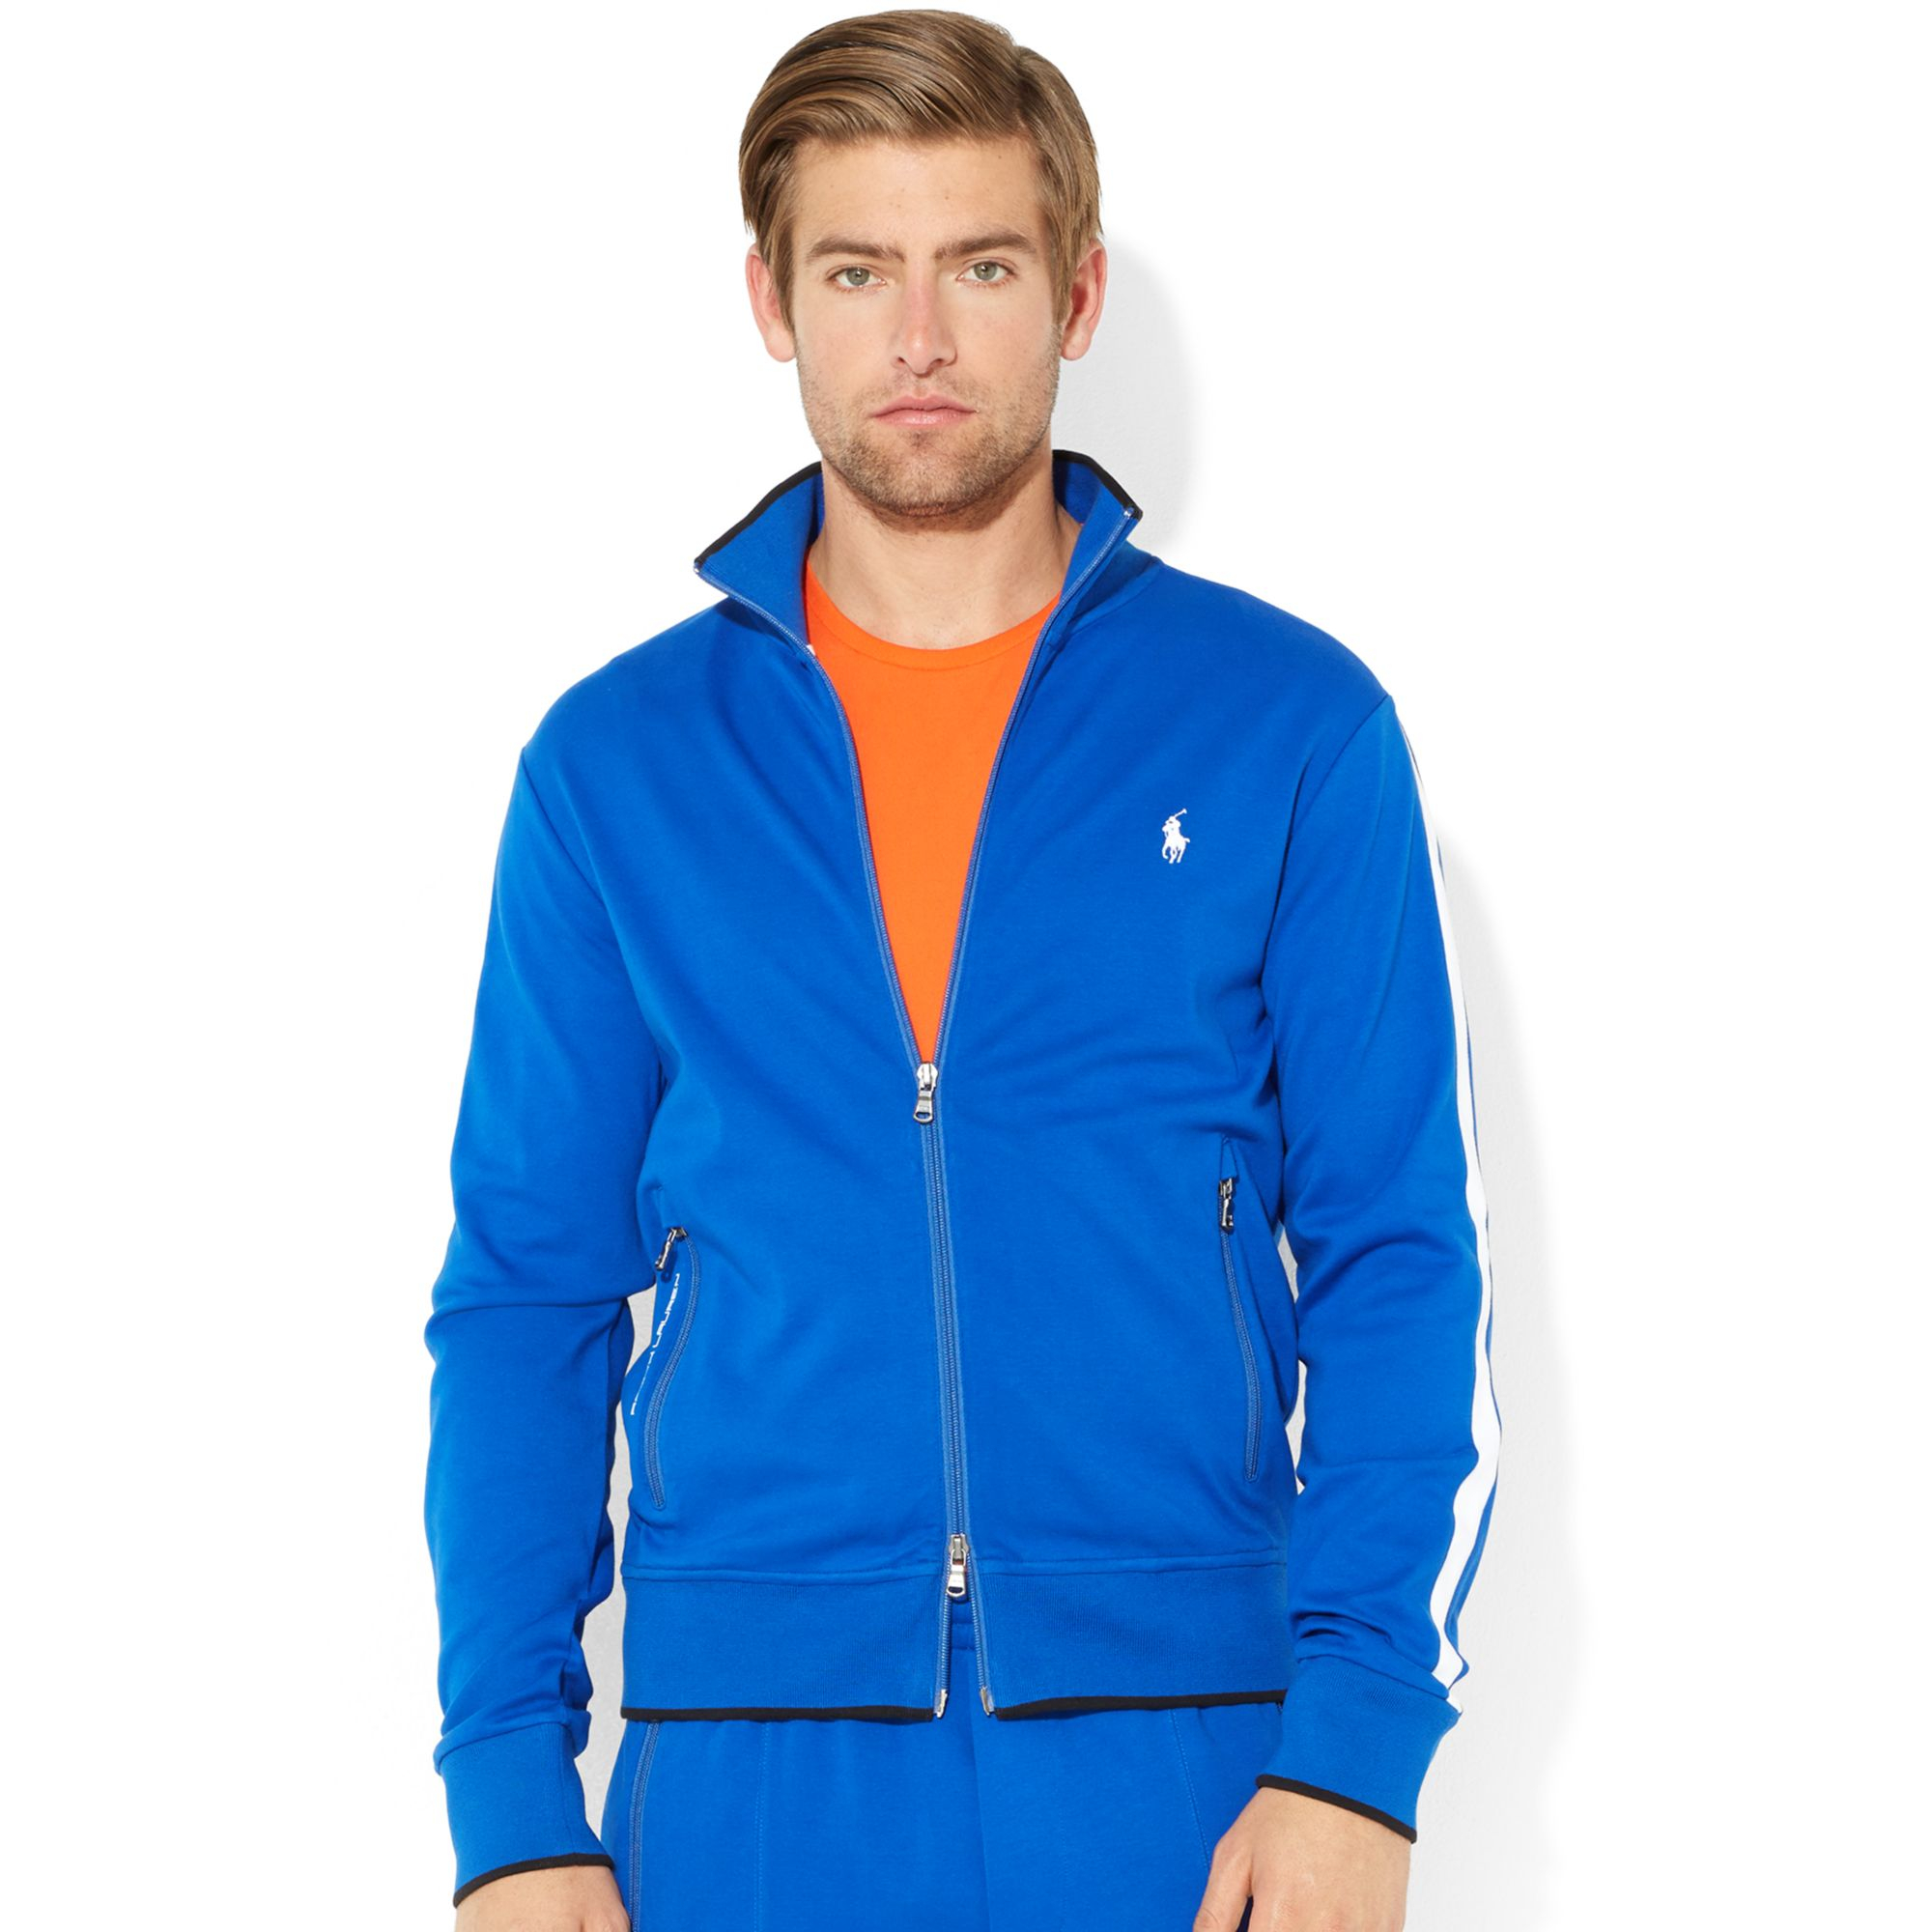 polo ralph lauren performance track jacket in blue for men. Black Bedroom Furniture Sets. Home Design Ideas